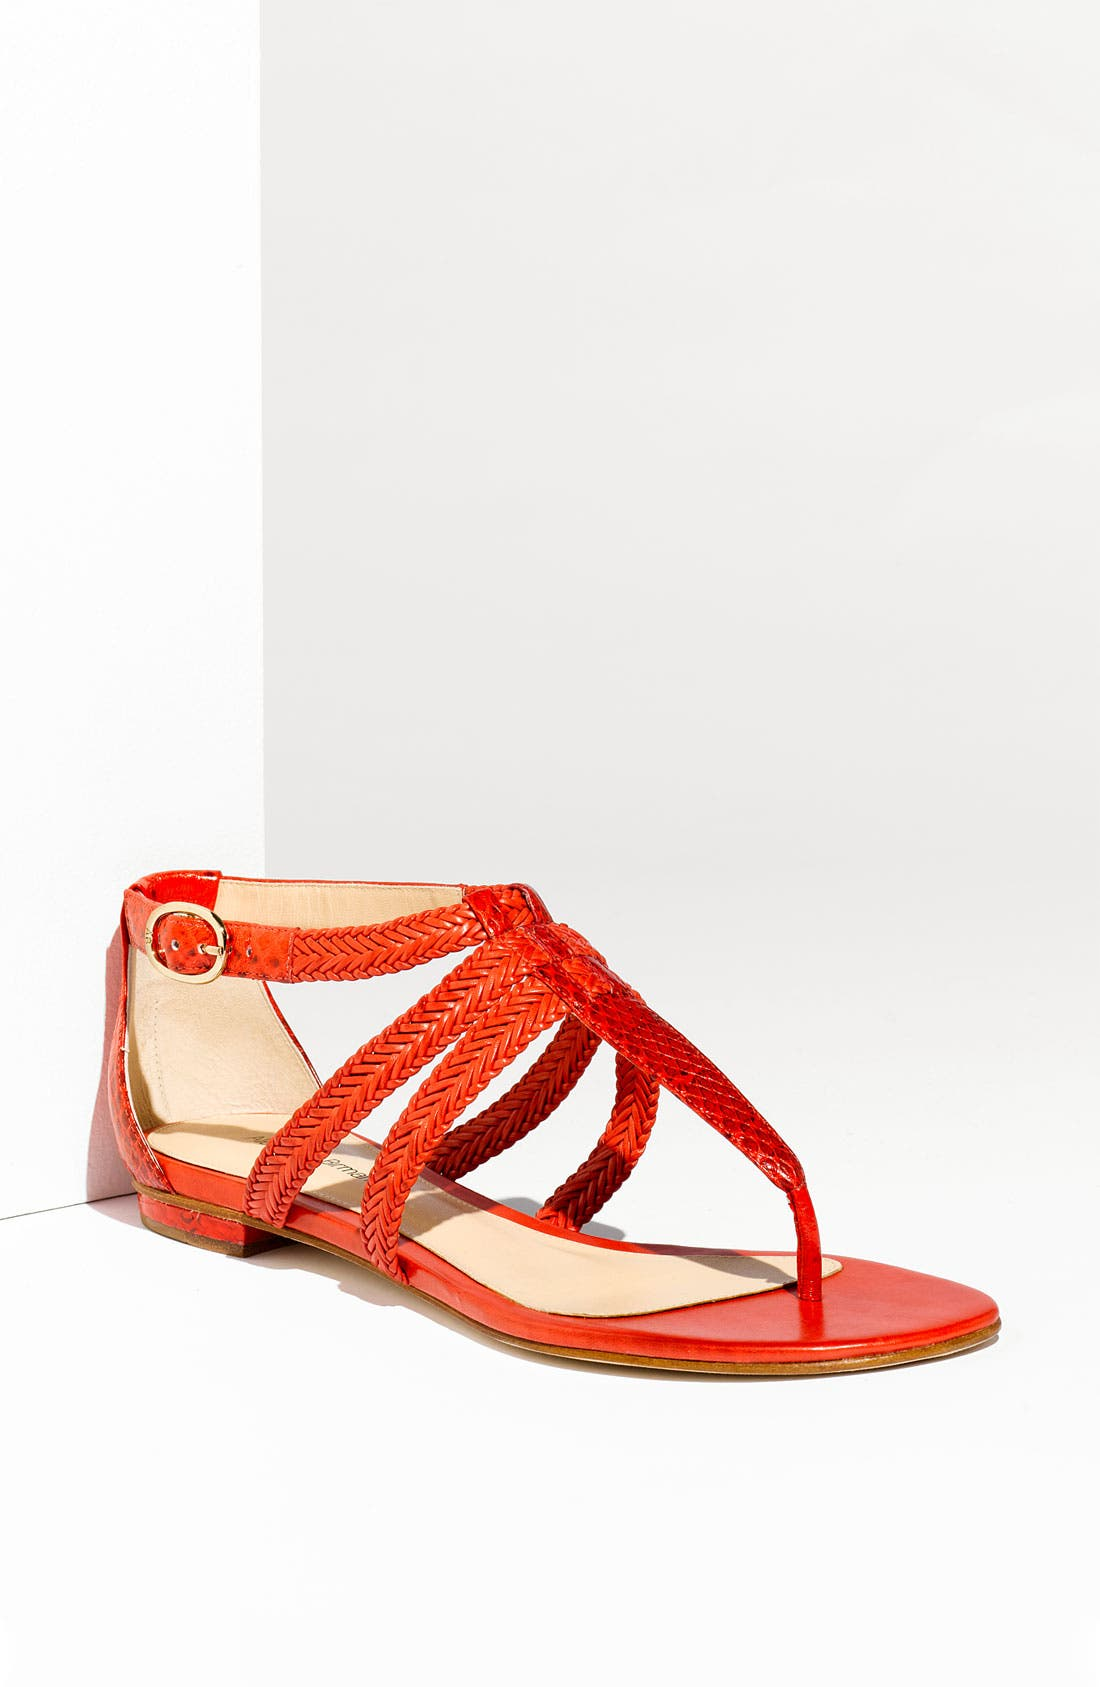 Main Image - Alexandre Birman Braided Thong Sandal